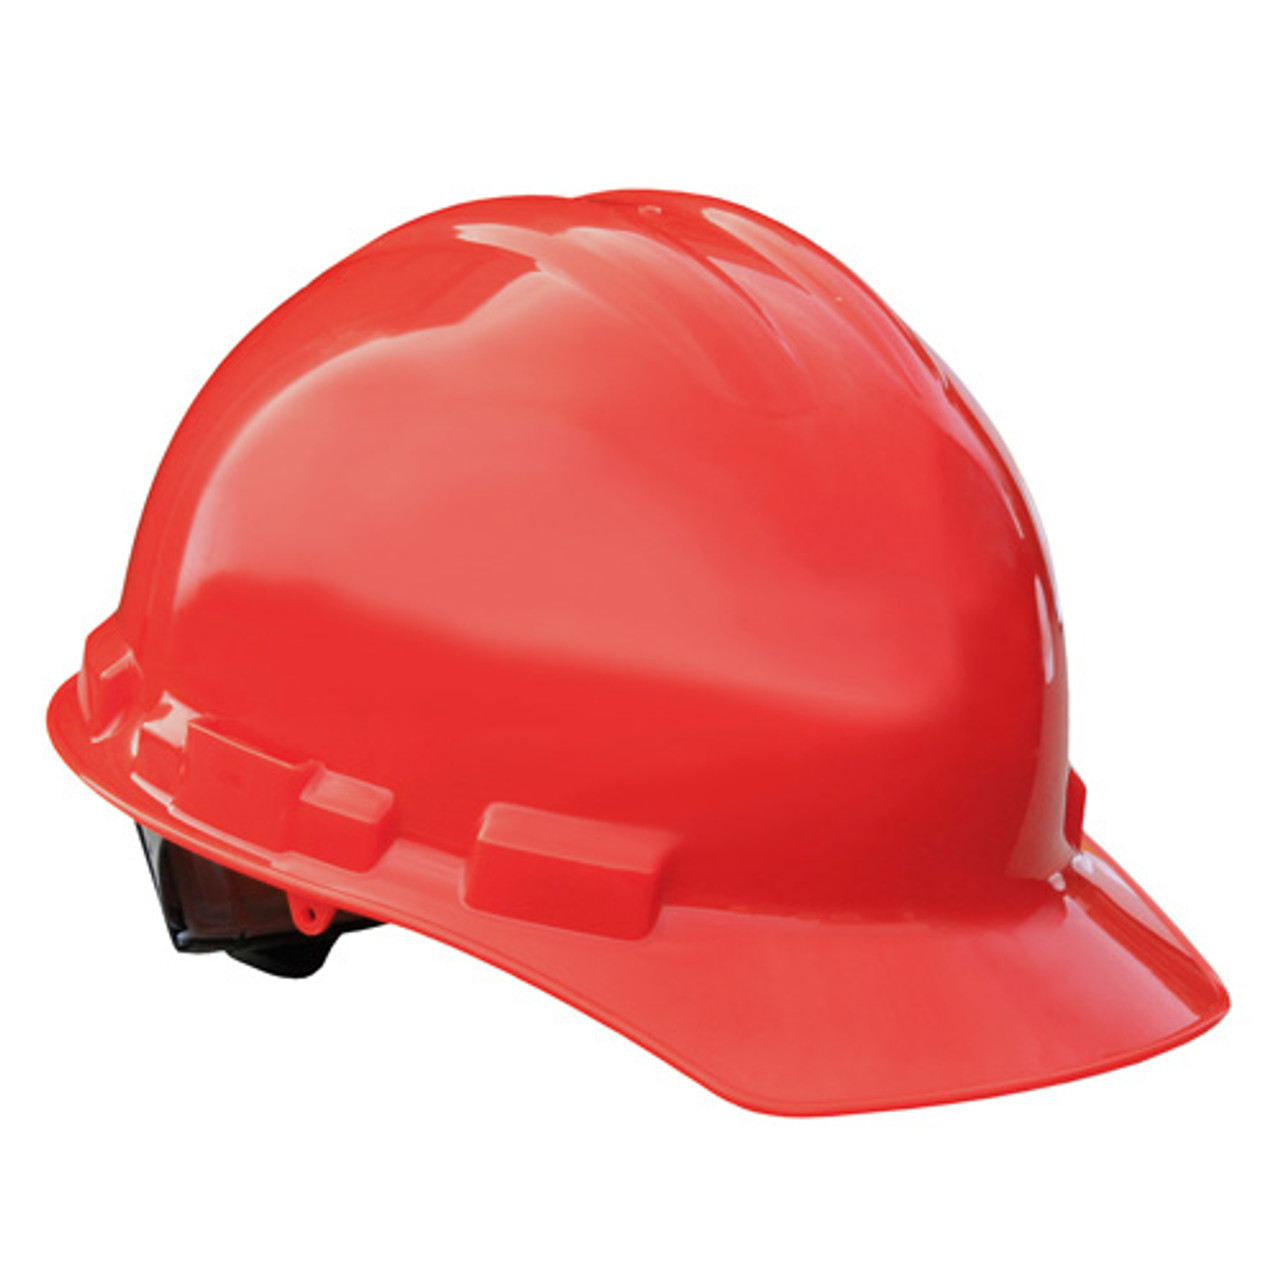 Red Radians Hard Hat Helmet with Ratchet Suspension Made in The USA